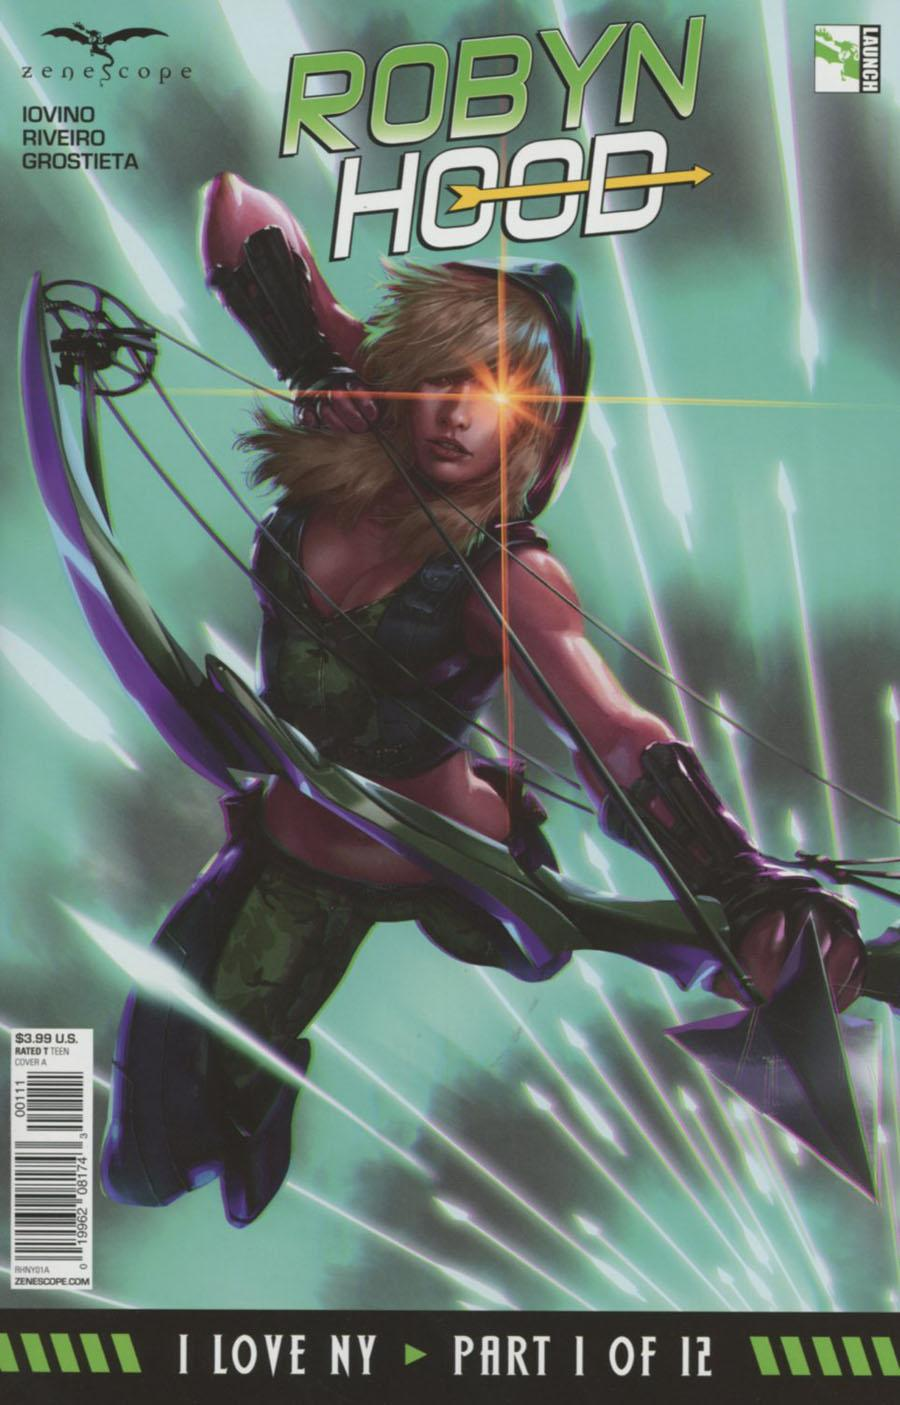 Grimm Fairy Tales Presents Robyn Hood I Love NY Vol. 1 #1